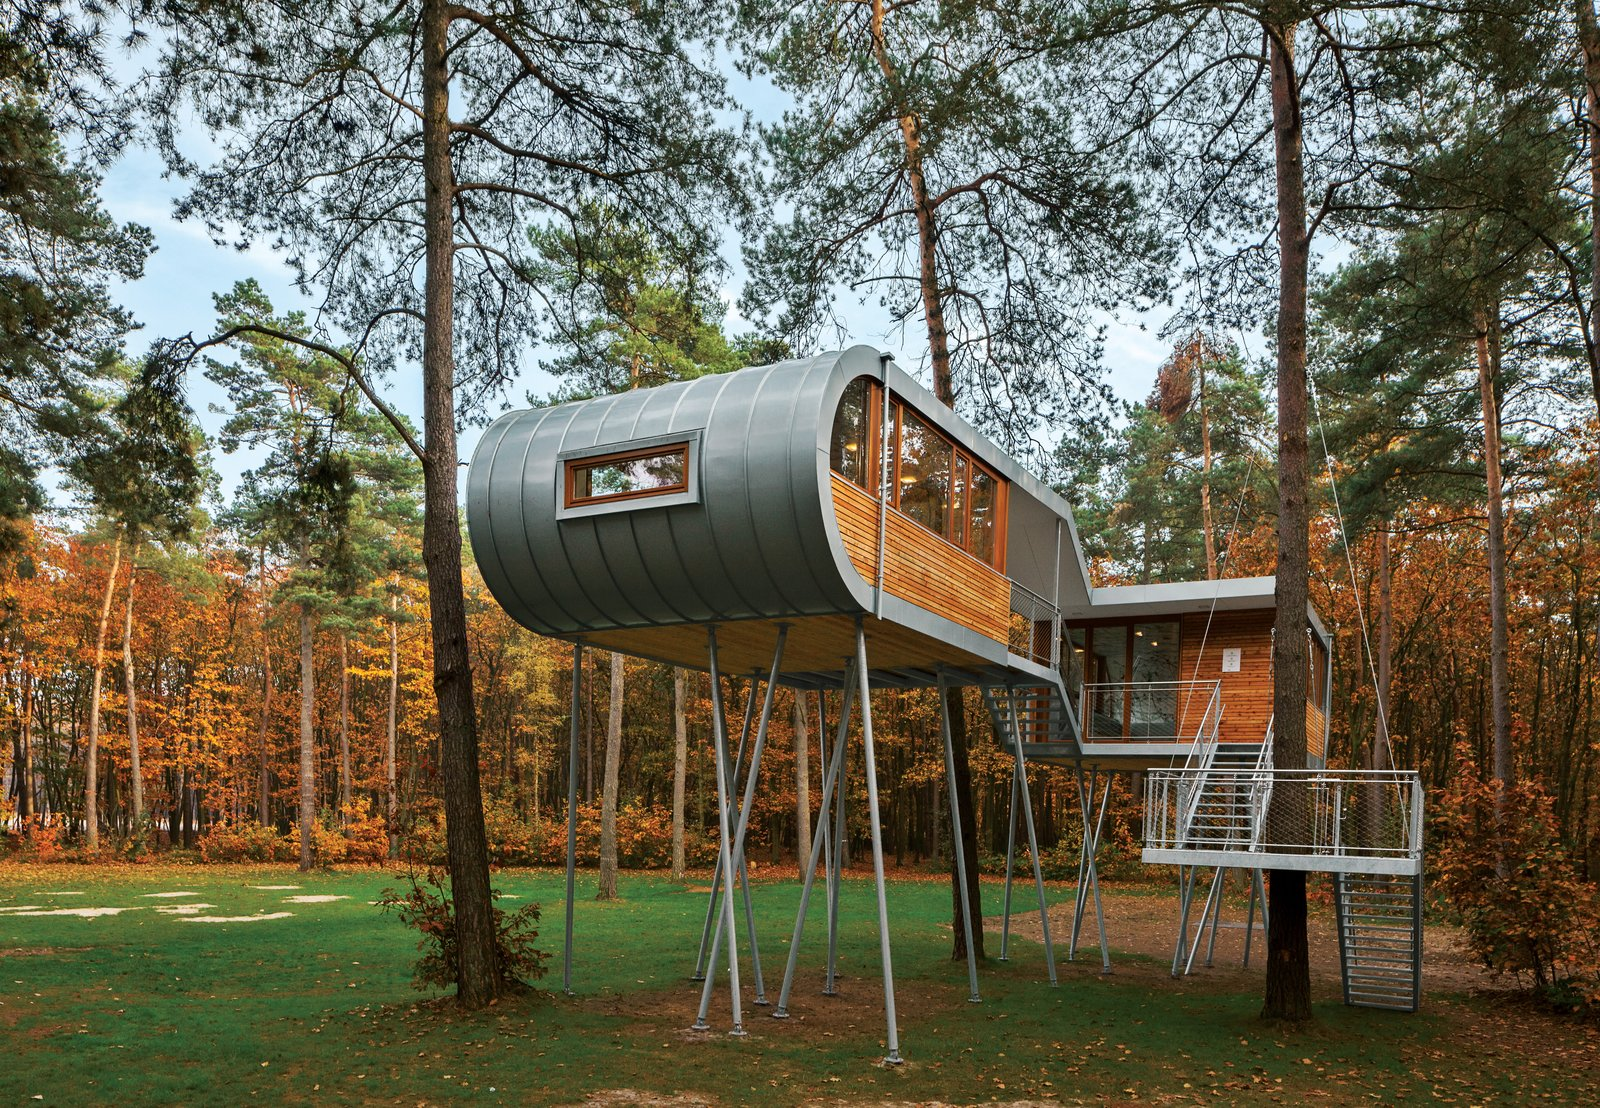 Treehouse by Baumraum, Belgium  Andreas Wenning's firm Baumraum counts over 40 houses, sited in both rural and urban locales, in its portfolio. To reduce impact at this forested site, Baumraum prefabricated a treehouse and craned it atop 19 steel columns, arranging it so that the surrounding trees' roots wouldn't be harmed.  Prefab Homes by Dwell from Sourcing Guide for Modern Prefab Companies in Europe